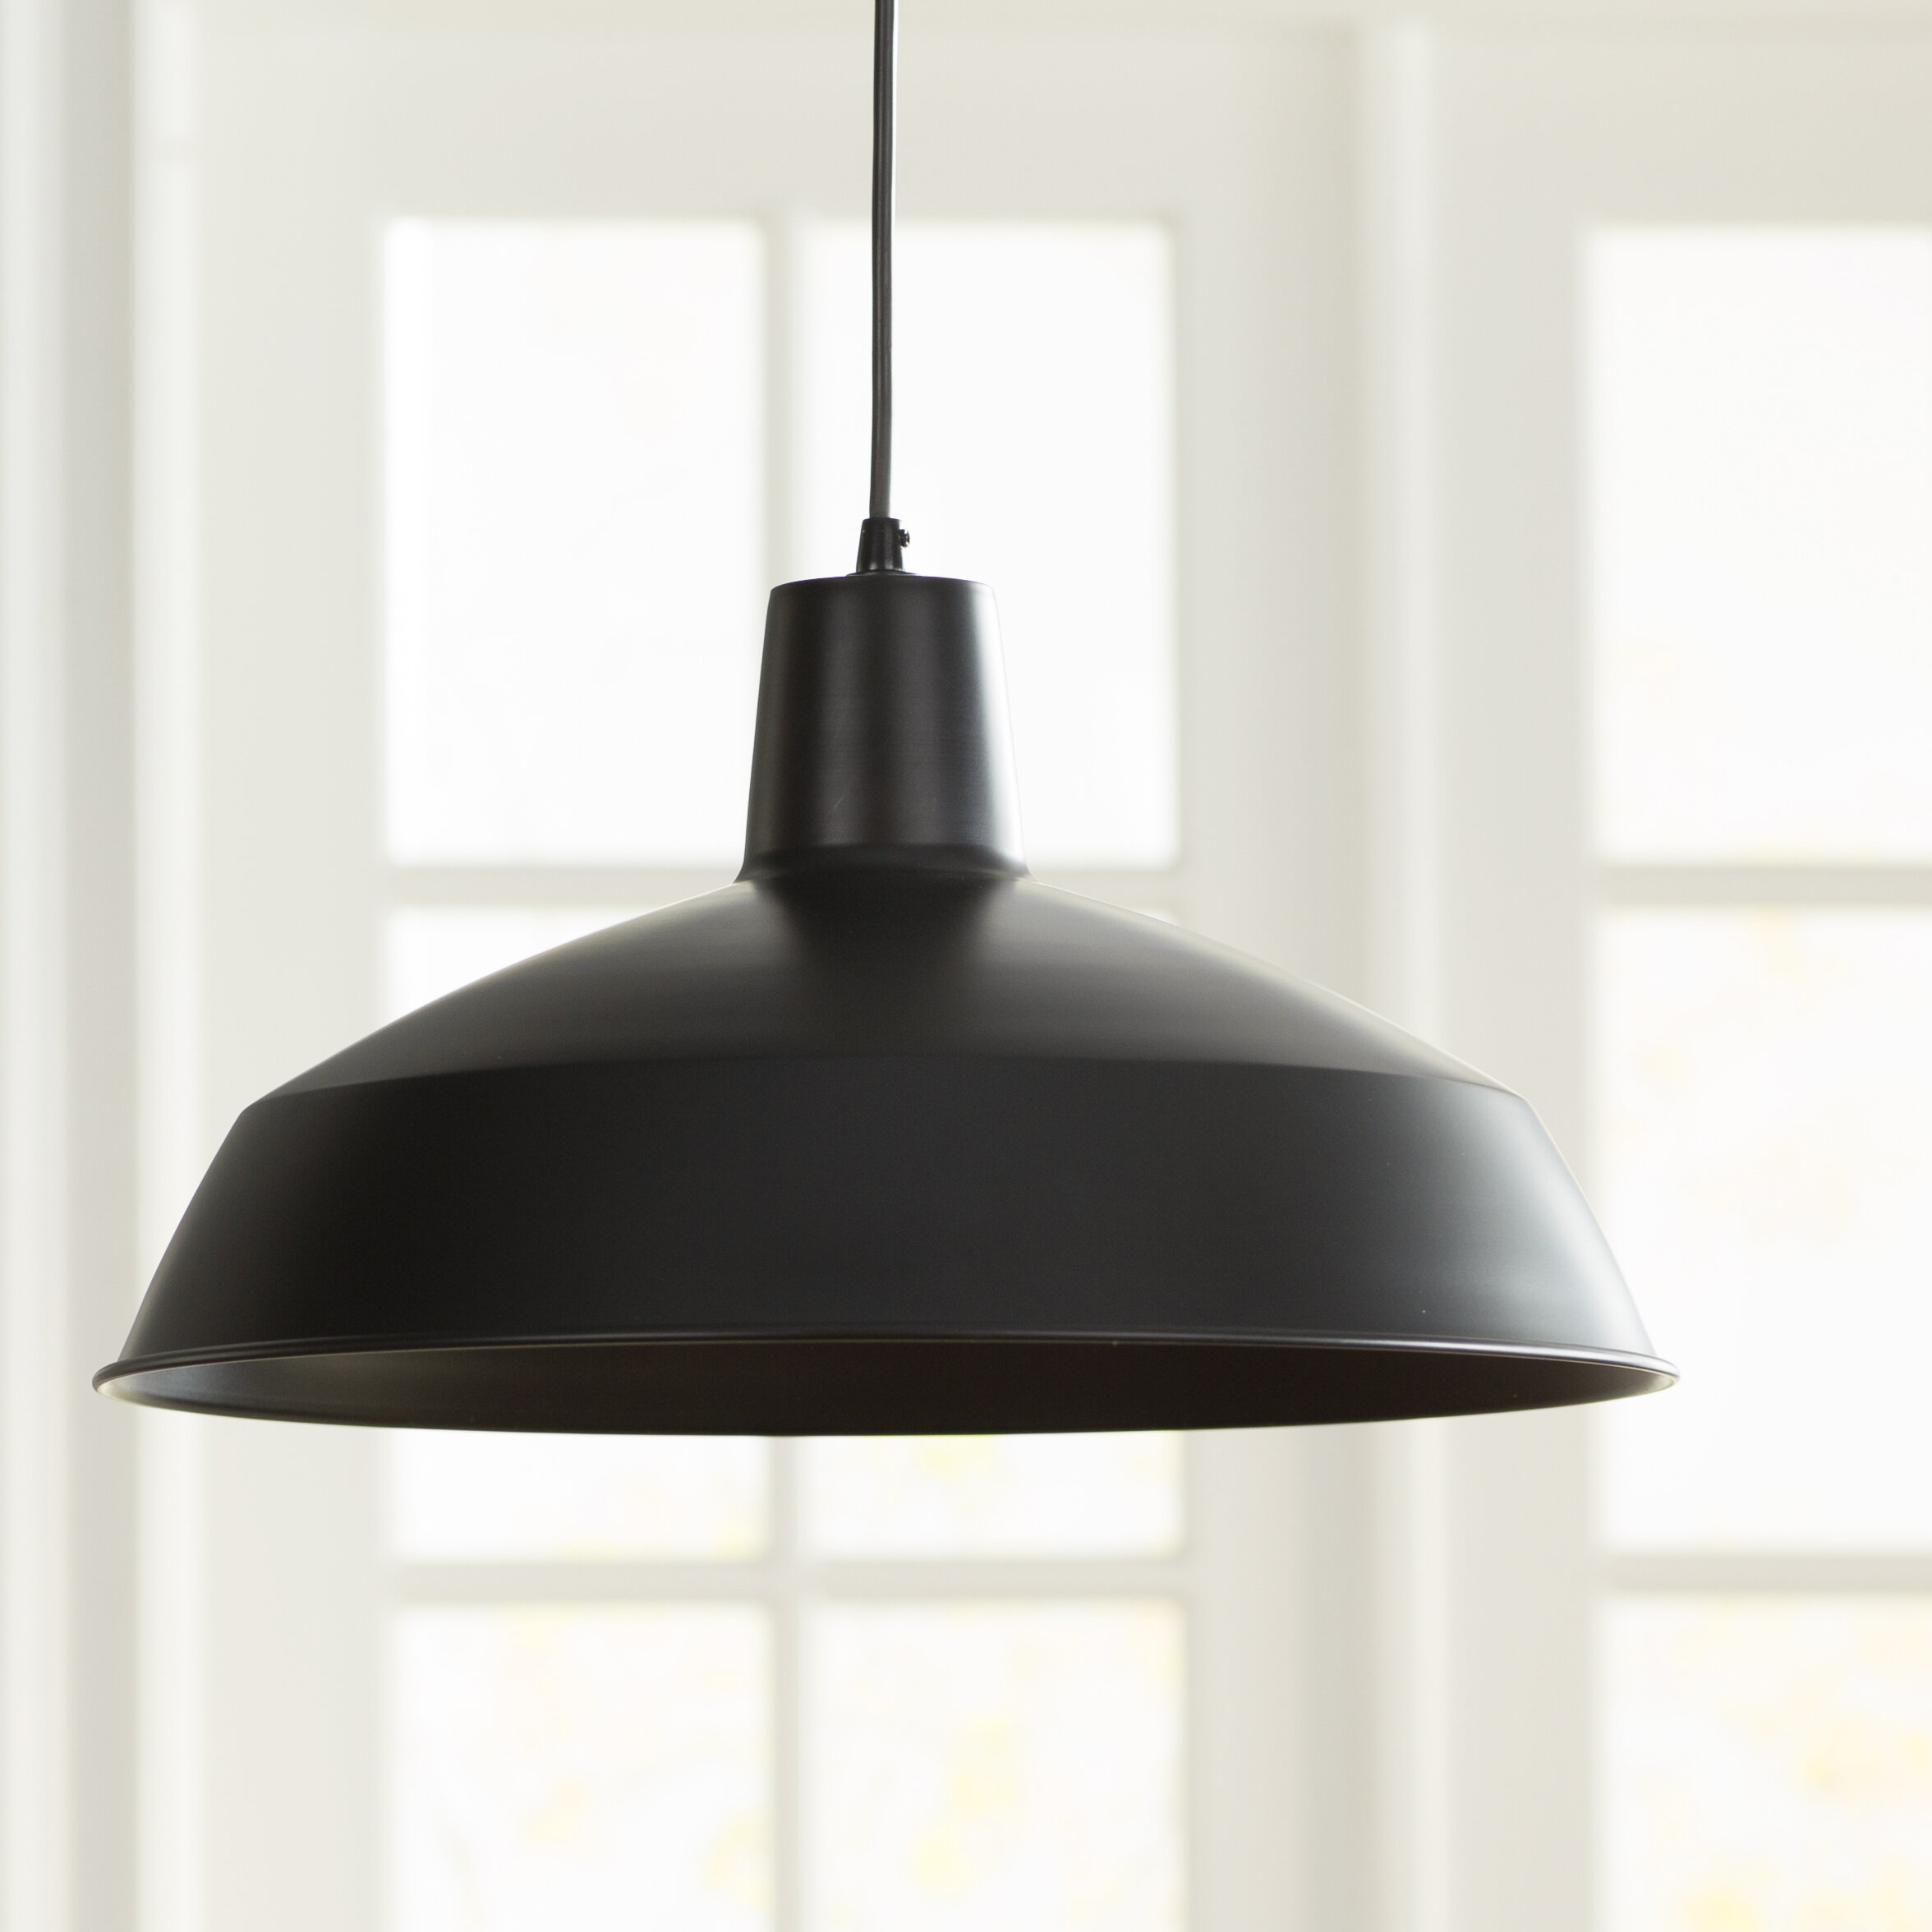 Laurel Foundry Modern Farmhouse Cornelia Industrial Warehouse 1 Light Bowl Pendant